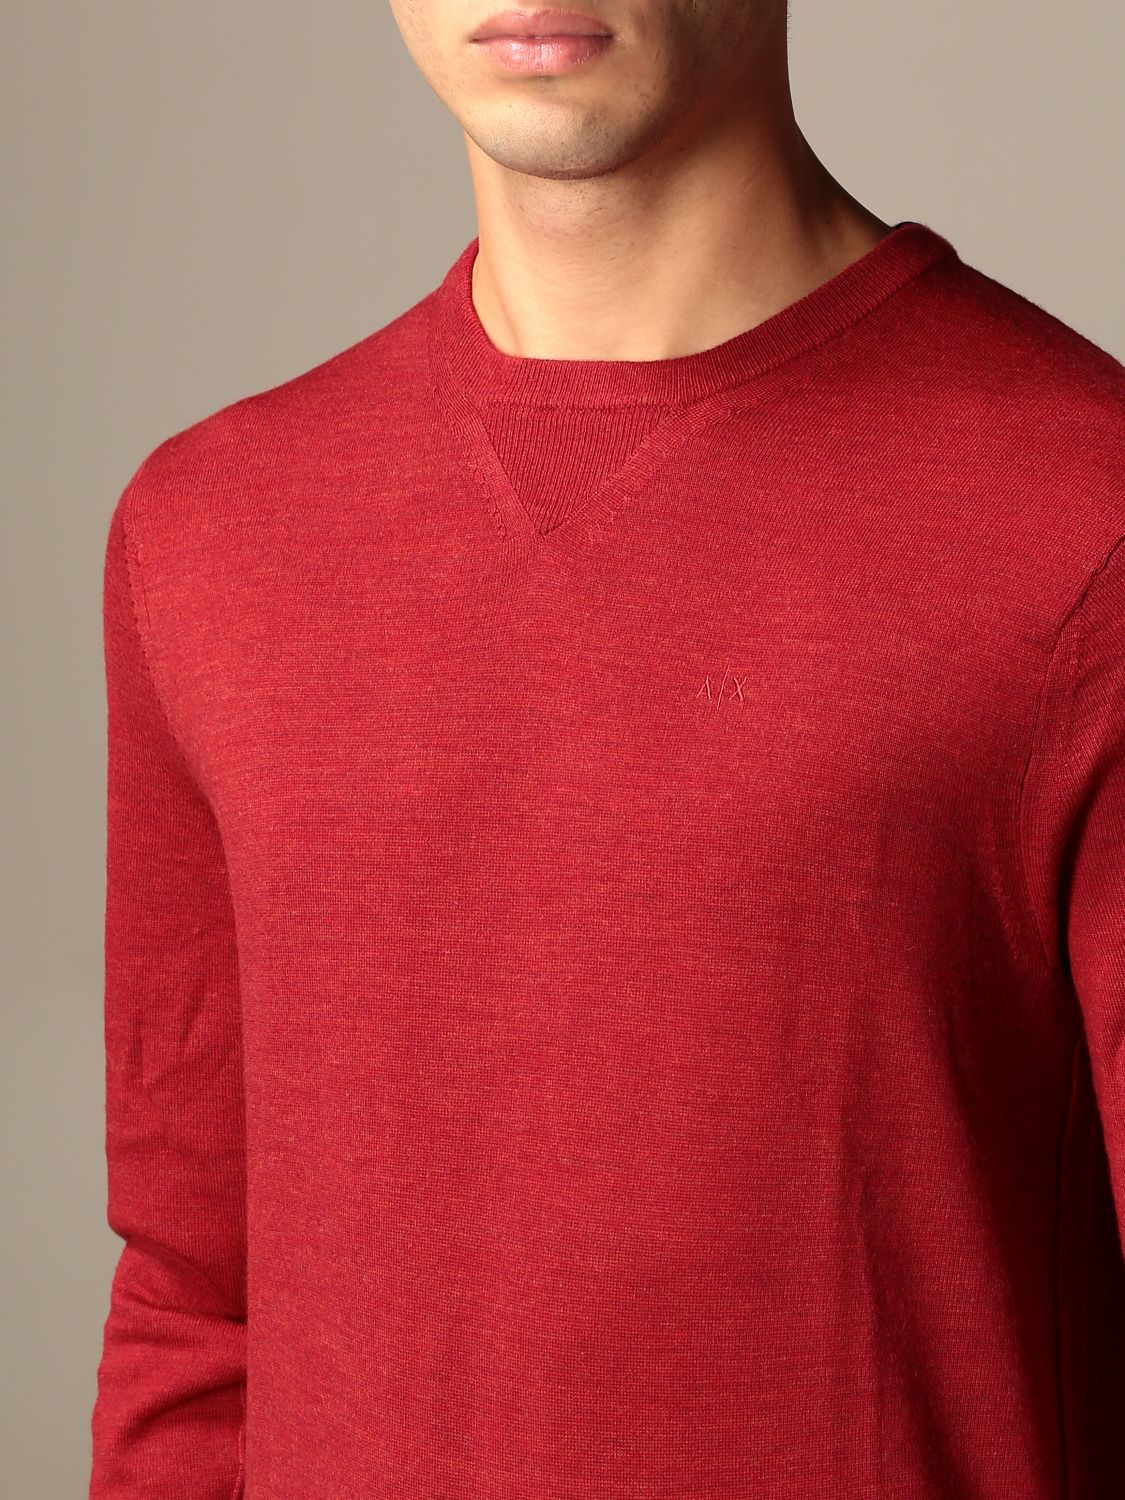 Jumper Armani Exchange: Jumper men Armani Exchange red 3